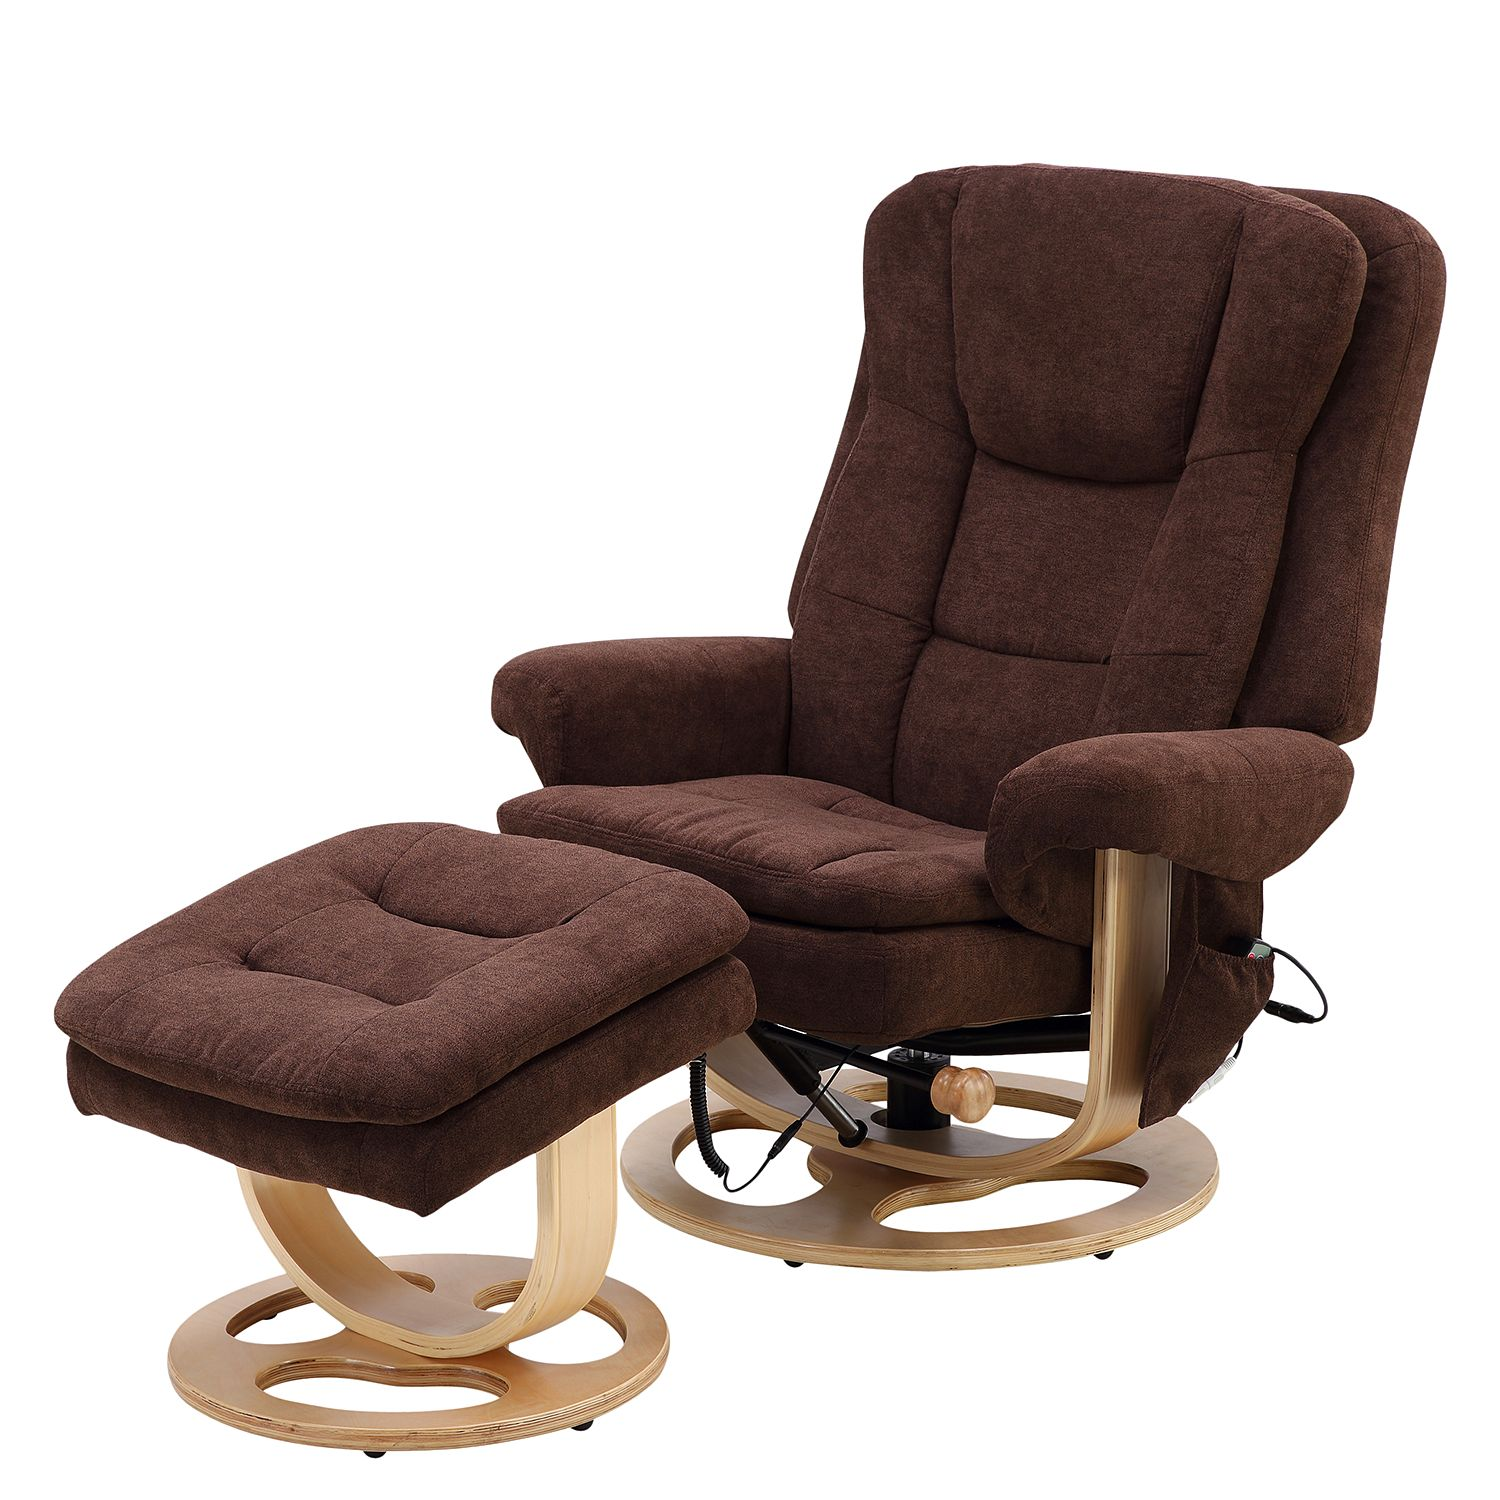 Fauteuil relax Parap I